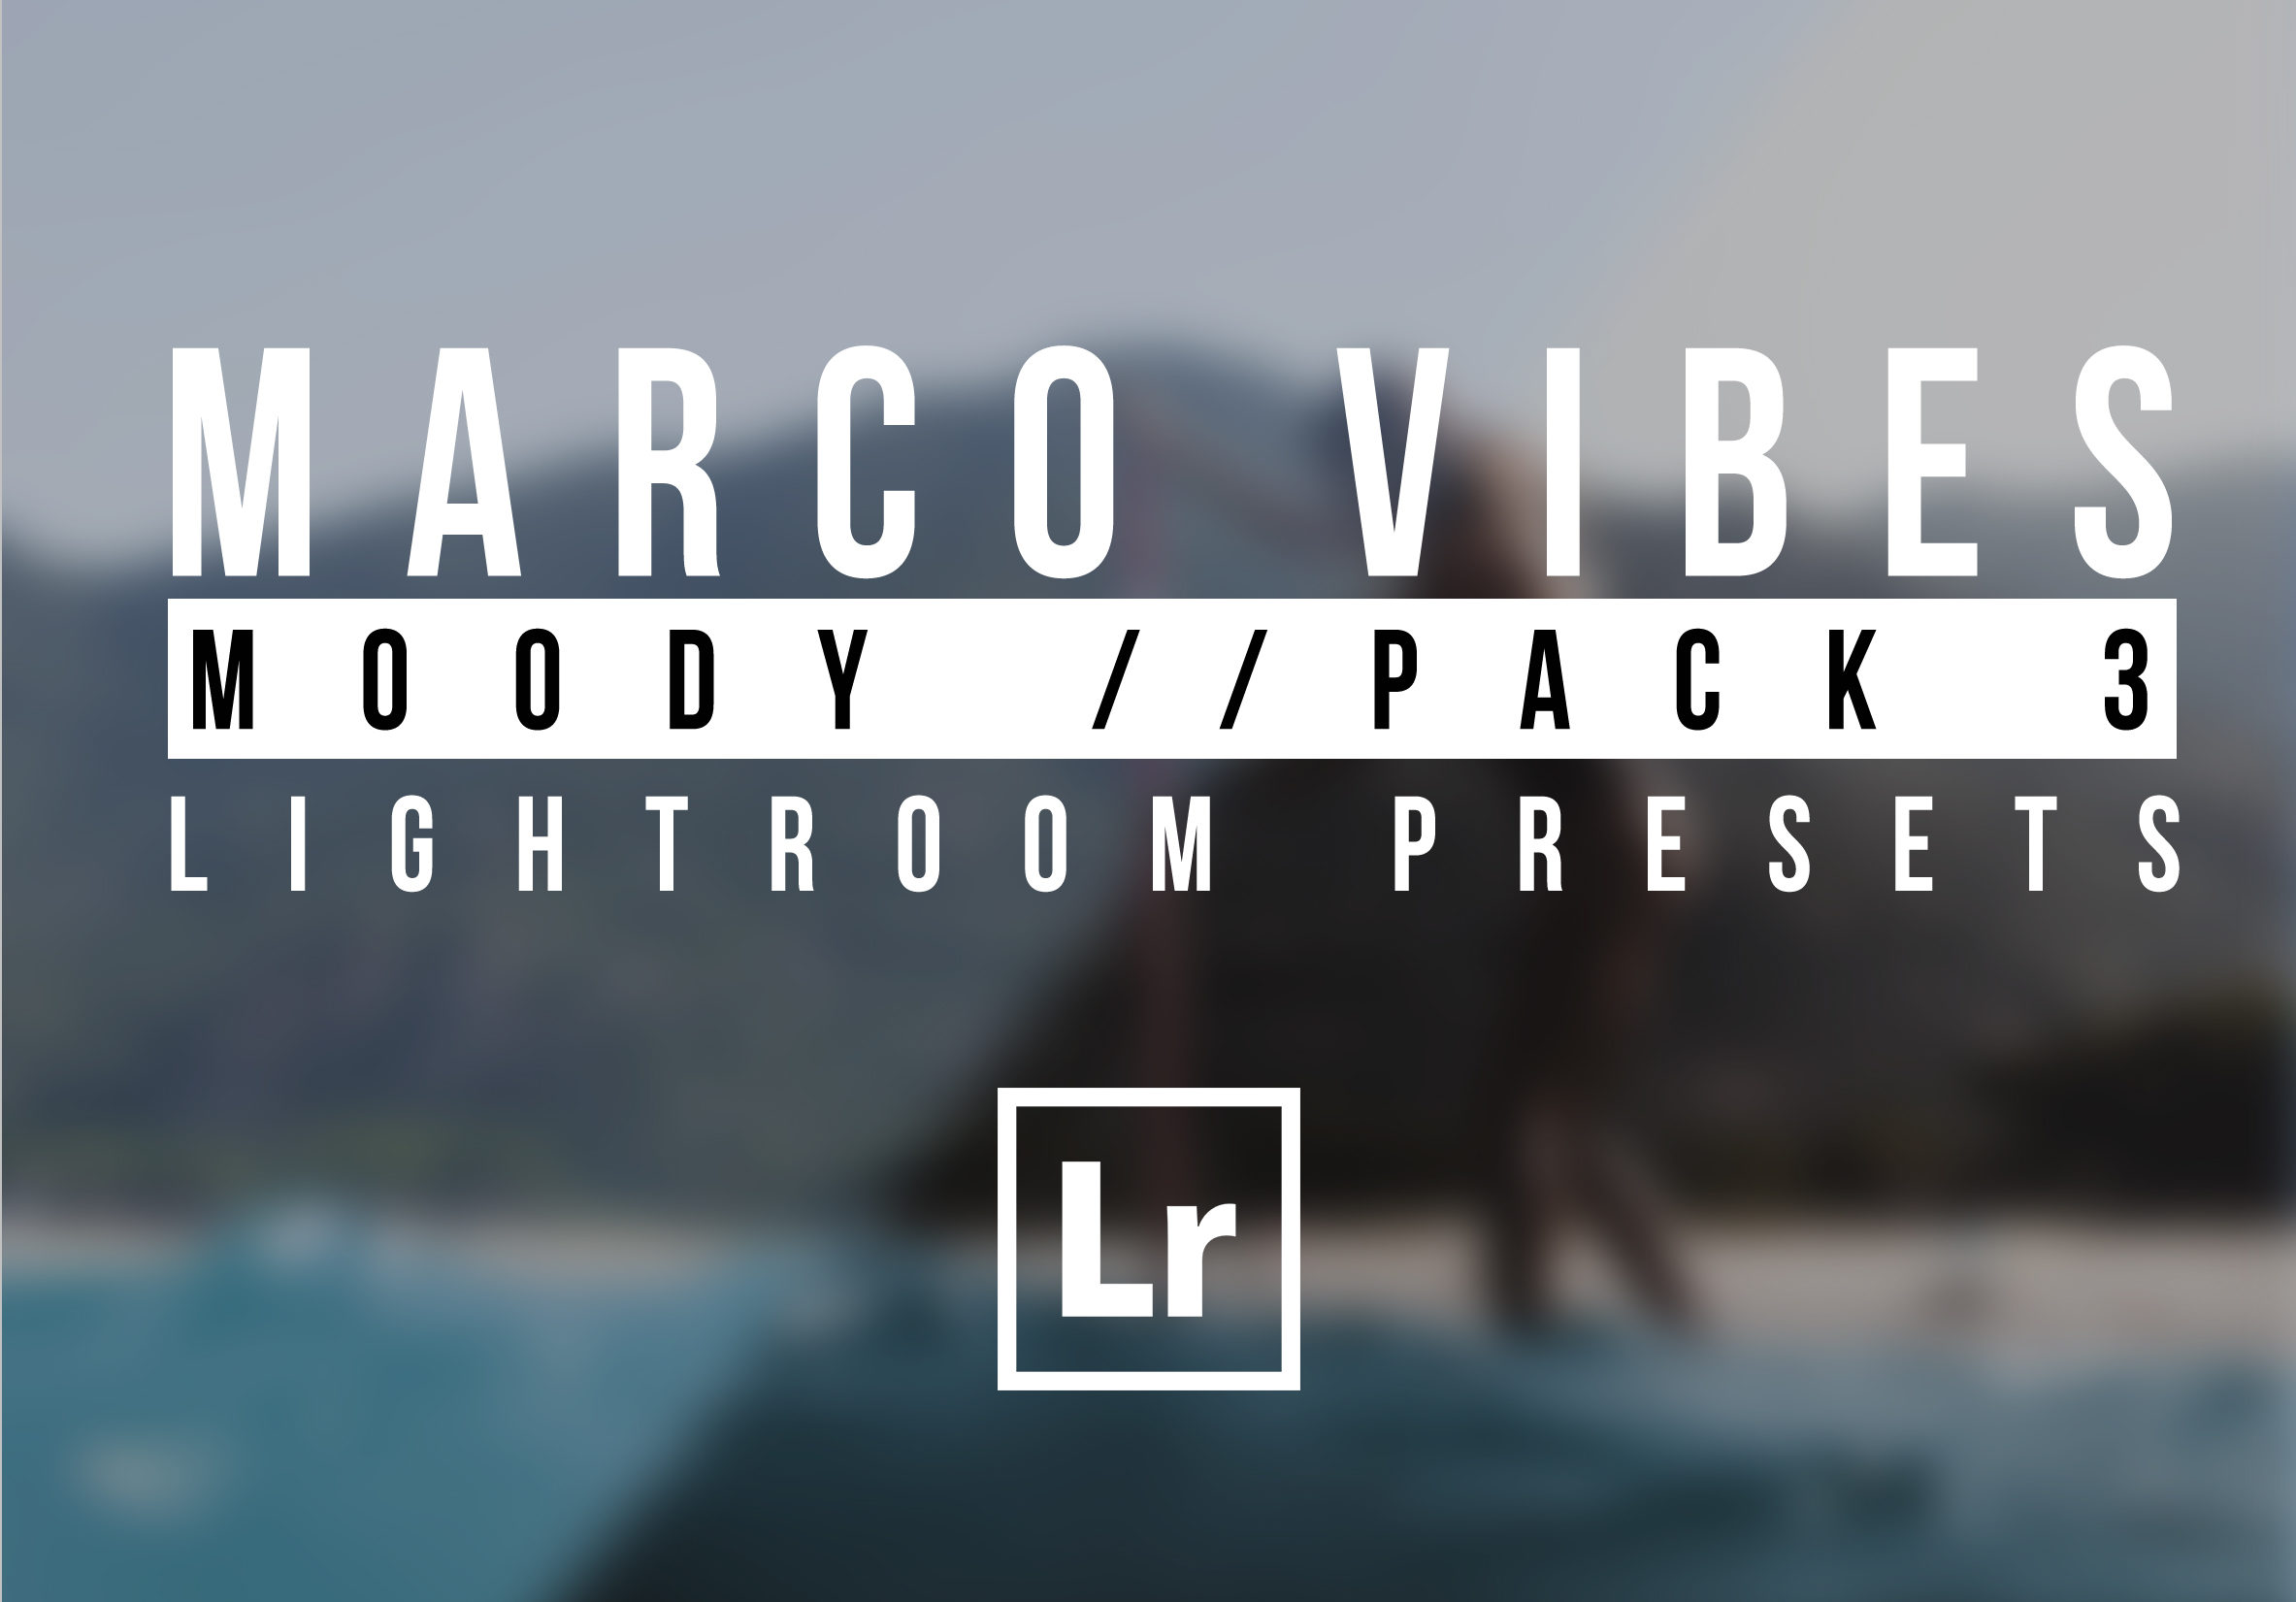 Marco Vibes Moody Lightroom Presets